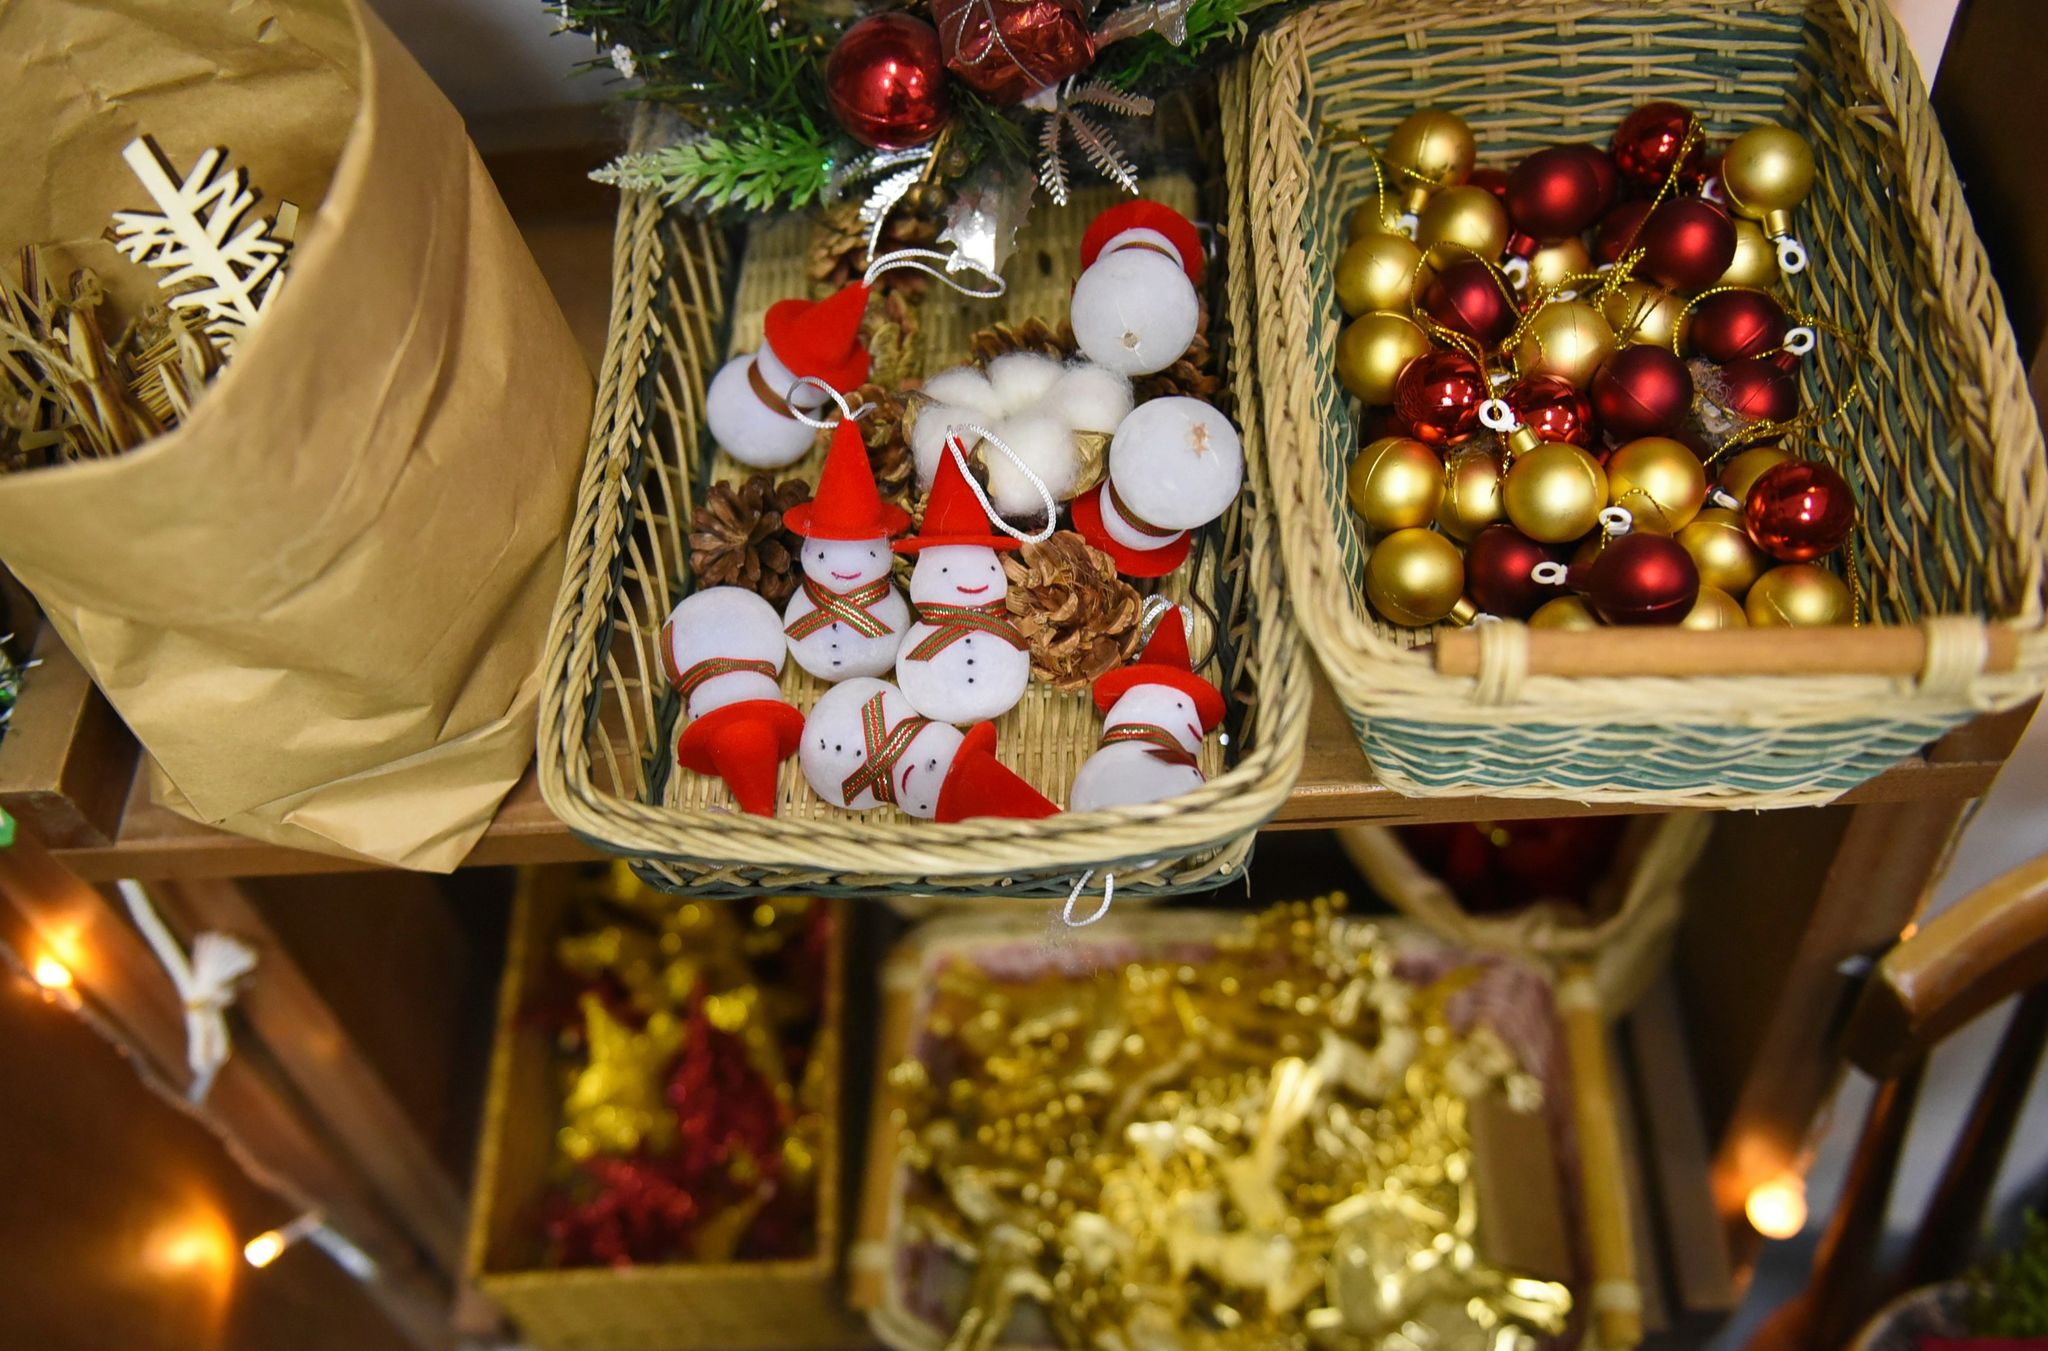 Christmas ornaments are sold at a shop in Ho Chi Minh City's District 3. Photo: Ngoc Phuong/ Tuoi Tre News